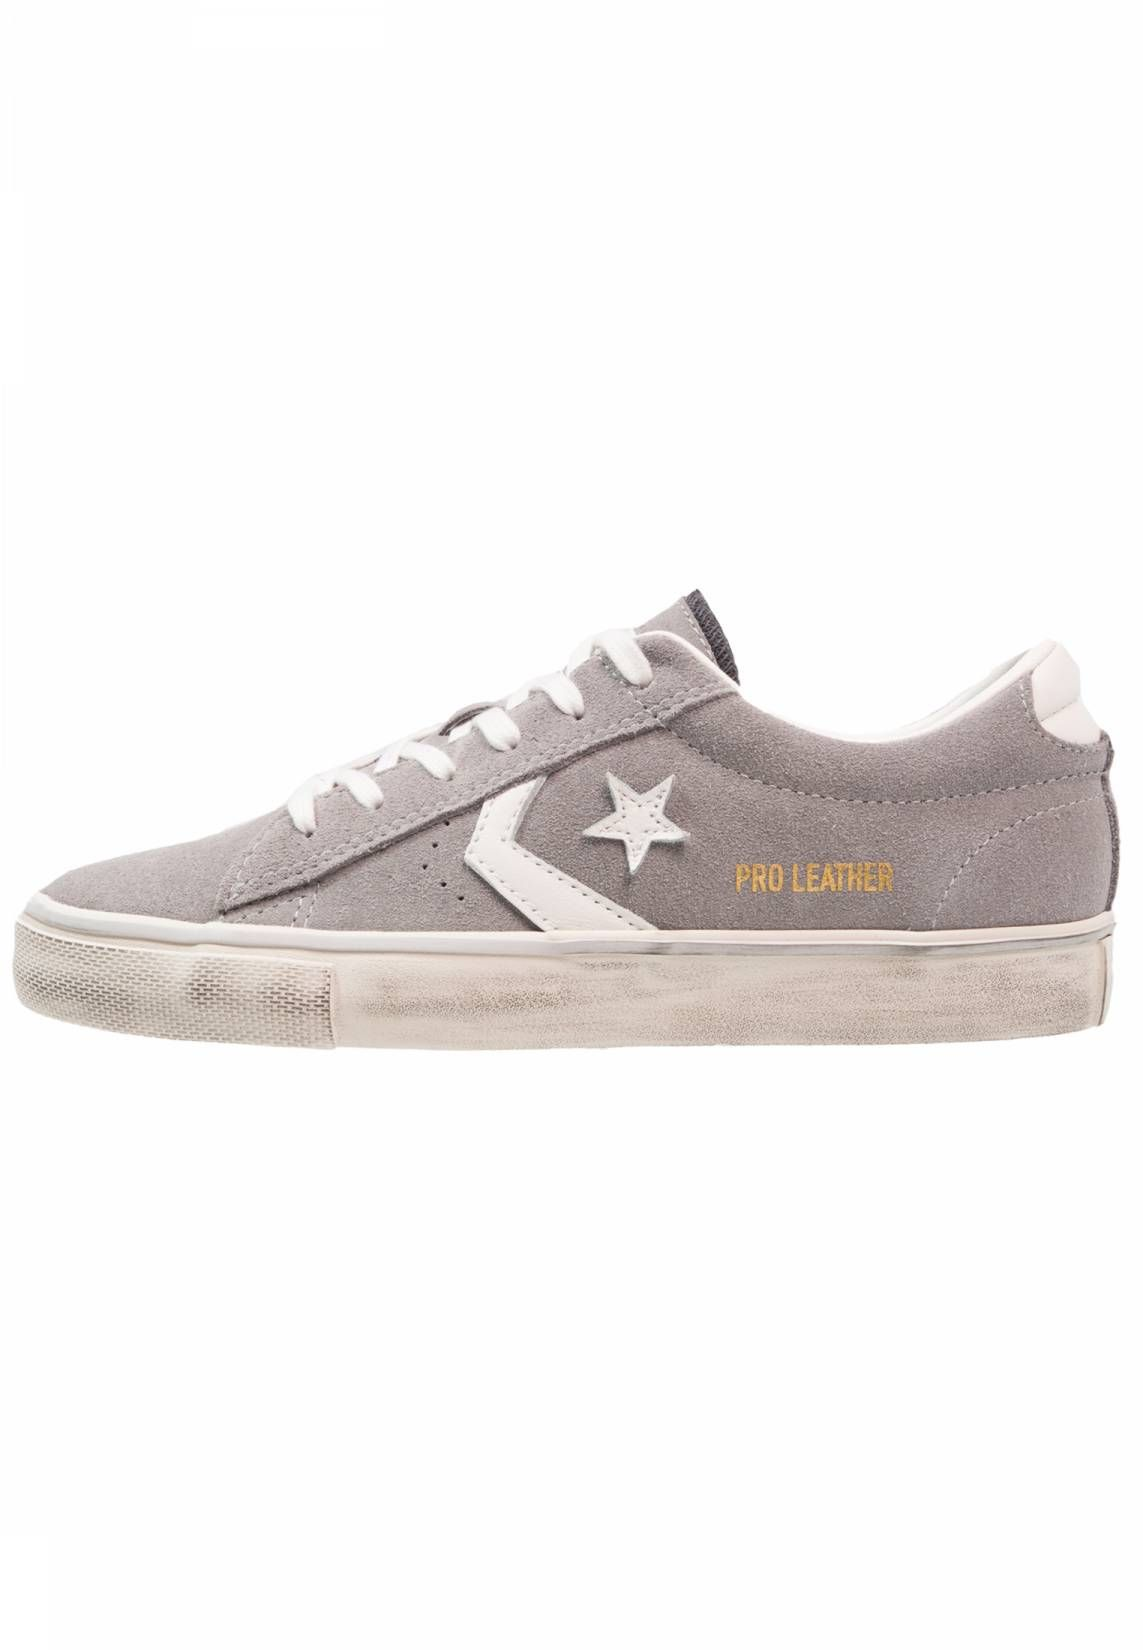 PRO LEATHER VULC OX LEATHER - FOOTWEAR - Low-tops & sneakers Converse GQOWSPa